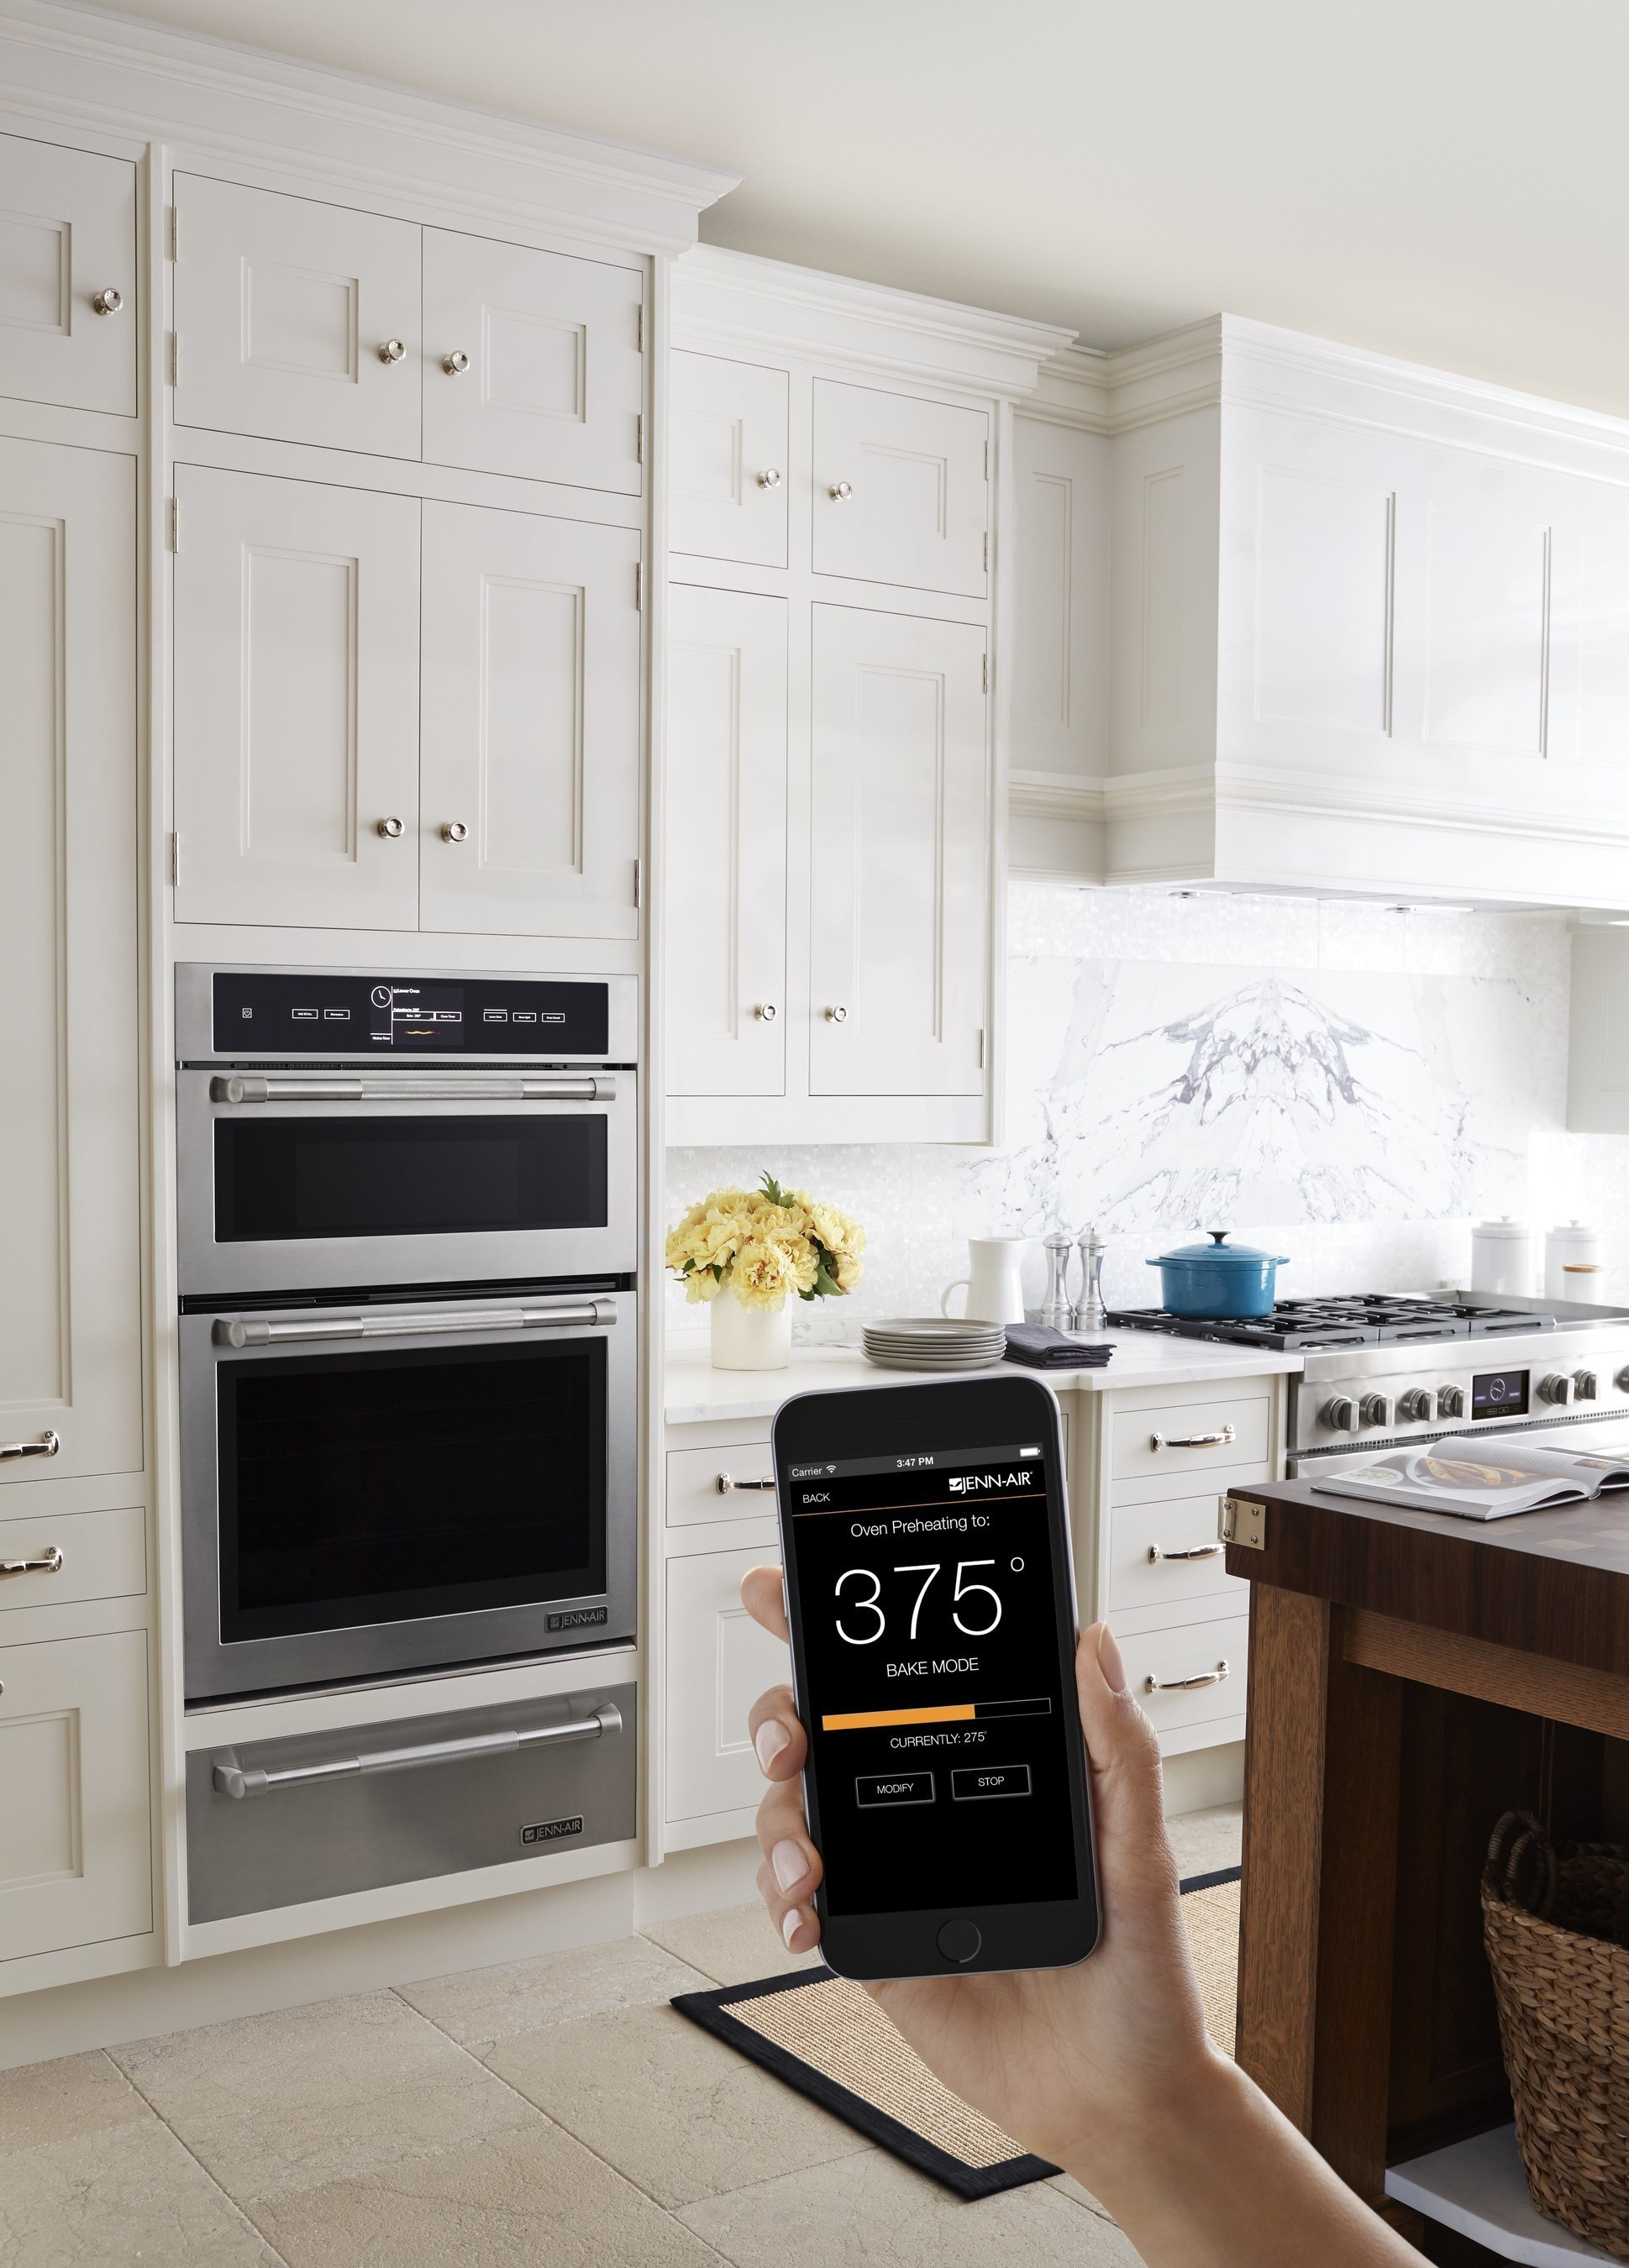 Jenn-Air(R) Connected Wall Oven with MultiMode(R) Convection System